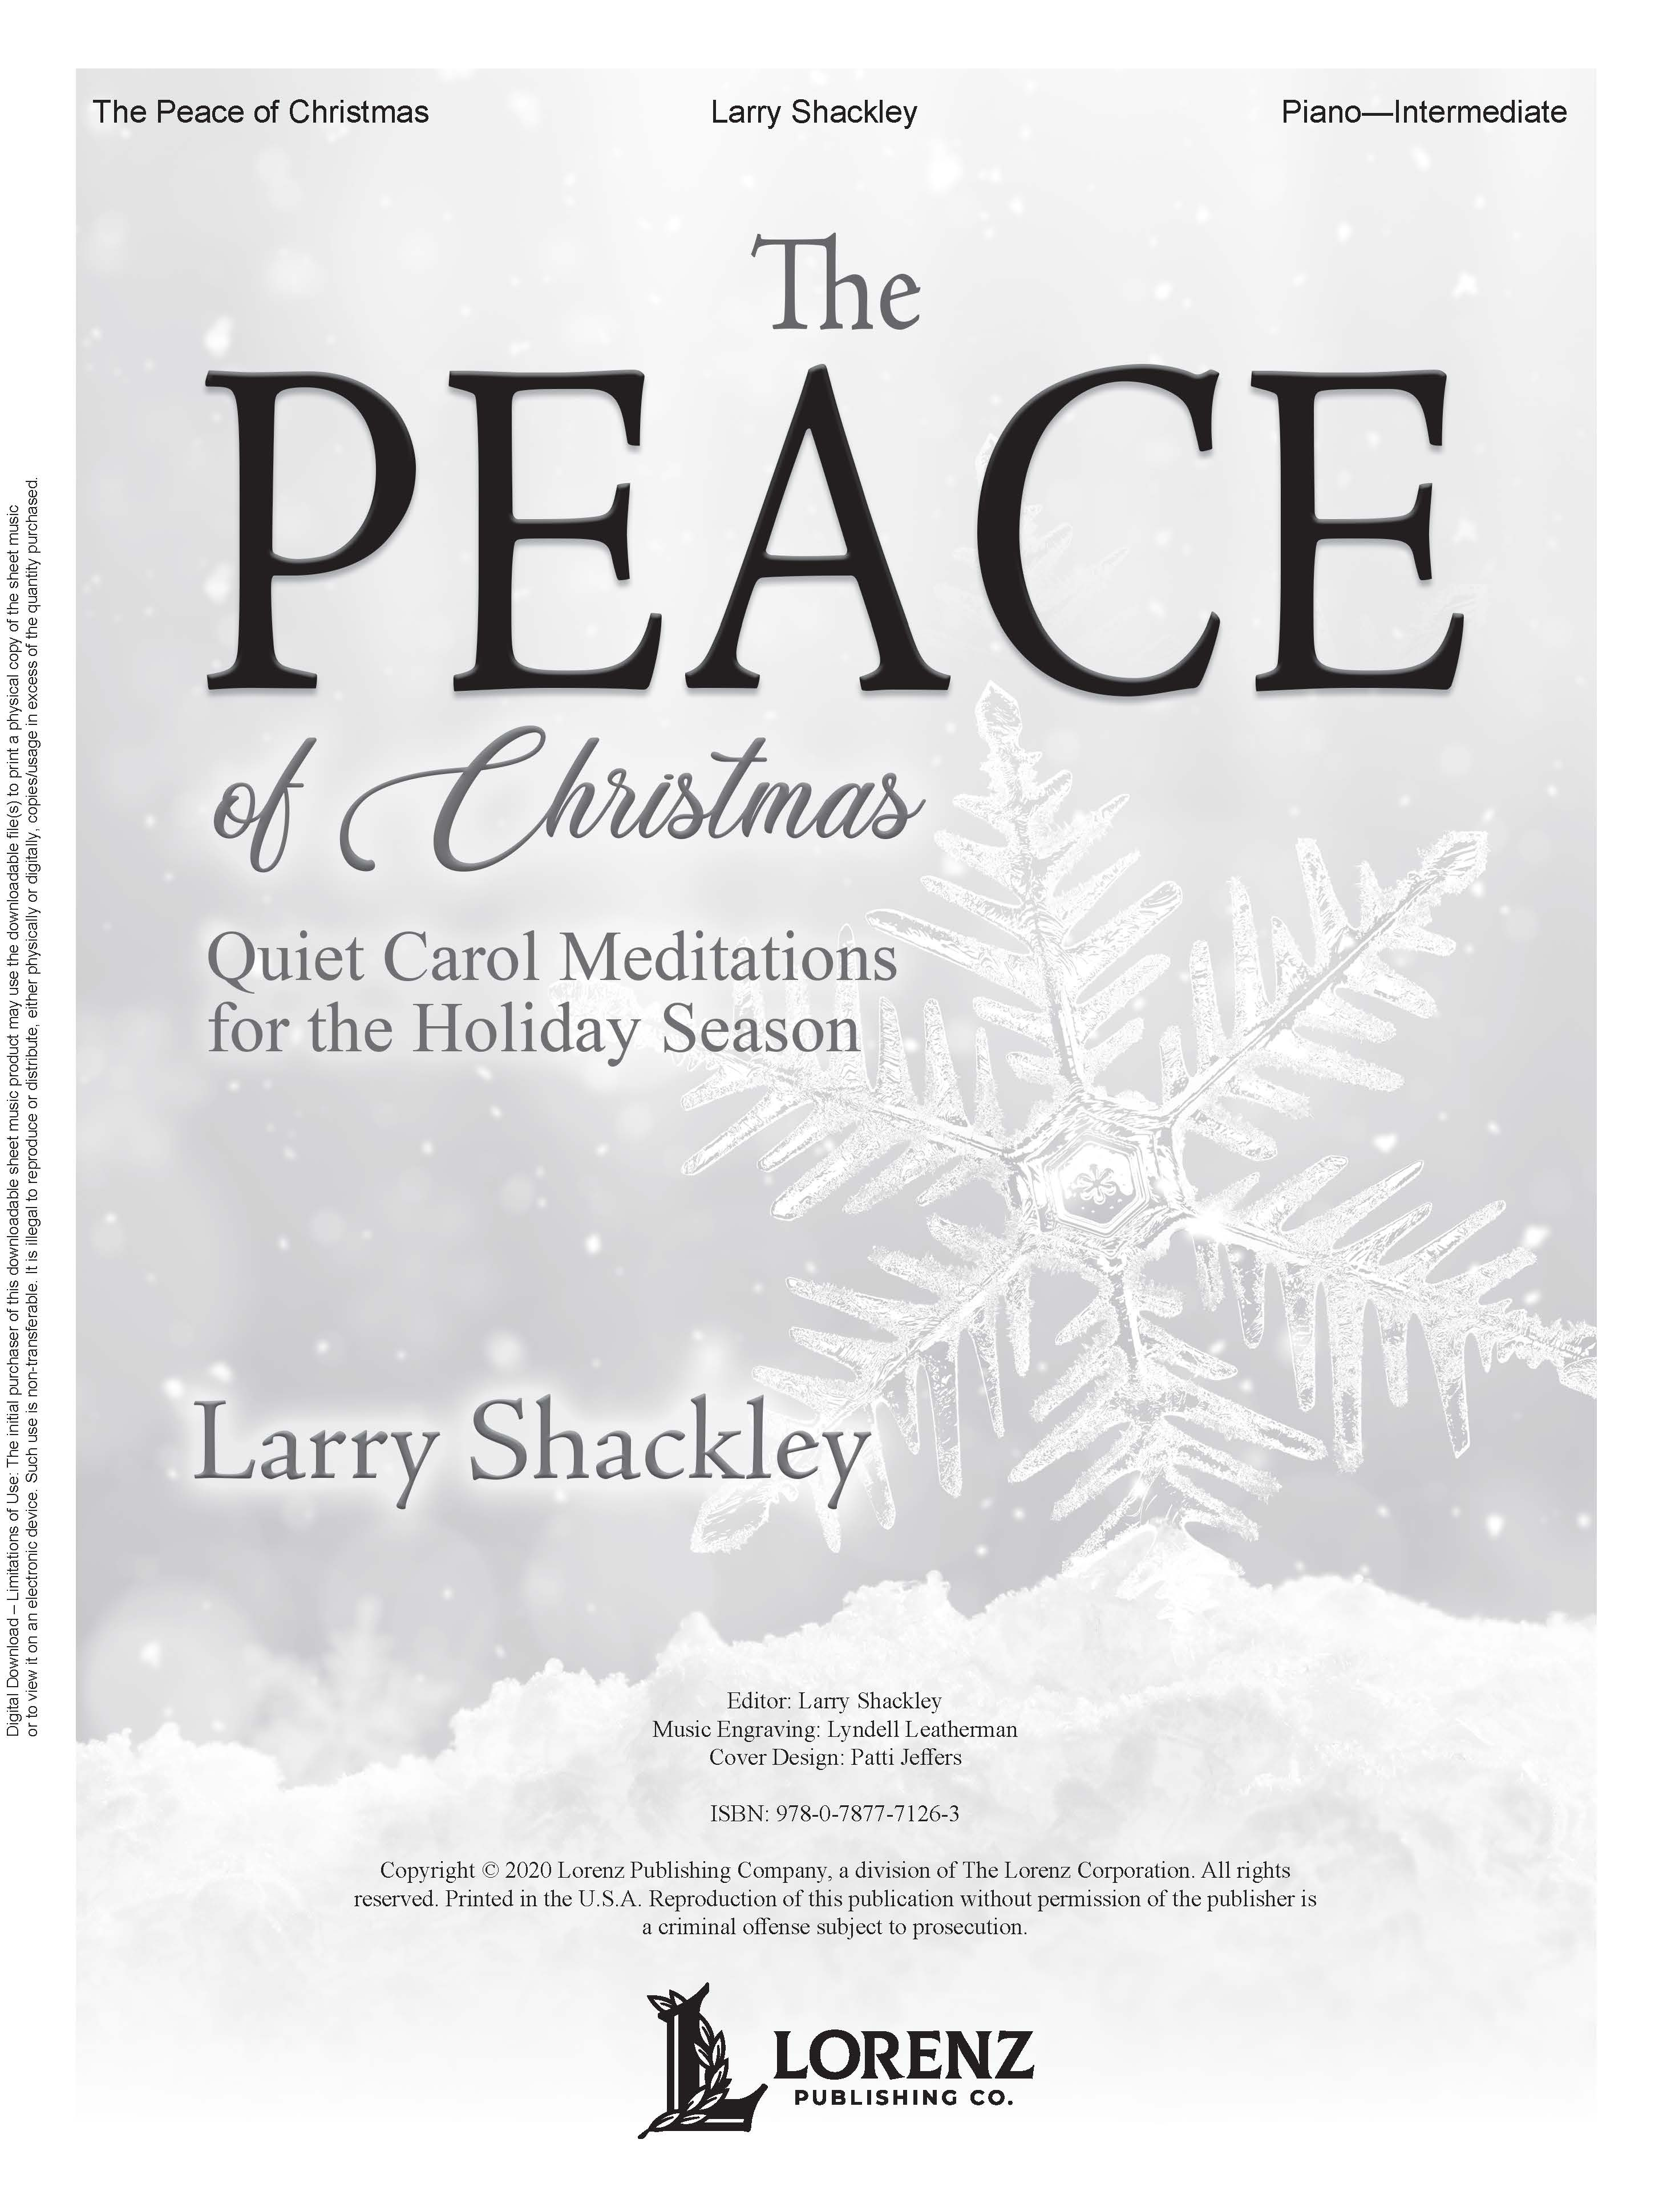 The Peace of Christmas - Digital Download